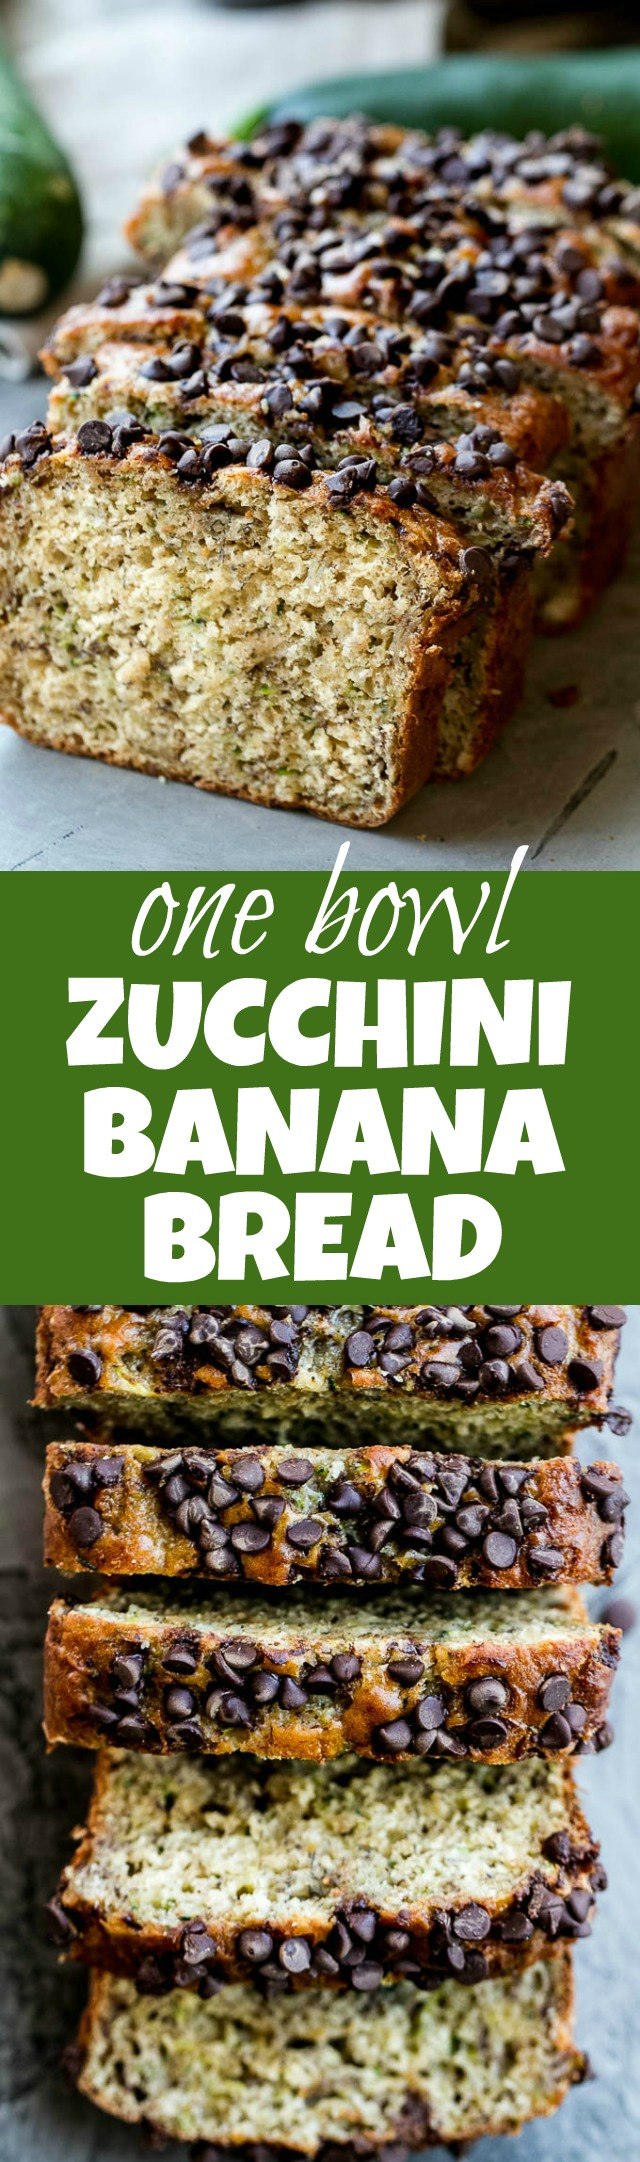 One Bowl Zucchini Banana Bread - made without butter or oil, but so tender and flavourful that you'd never be able to tell it's healthy! Greek yogurt, bananas, and shredded zucchini keep it extra moist, while a sprinkle of chocolate chips make it feel extra decadent | runningwithspoons.com